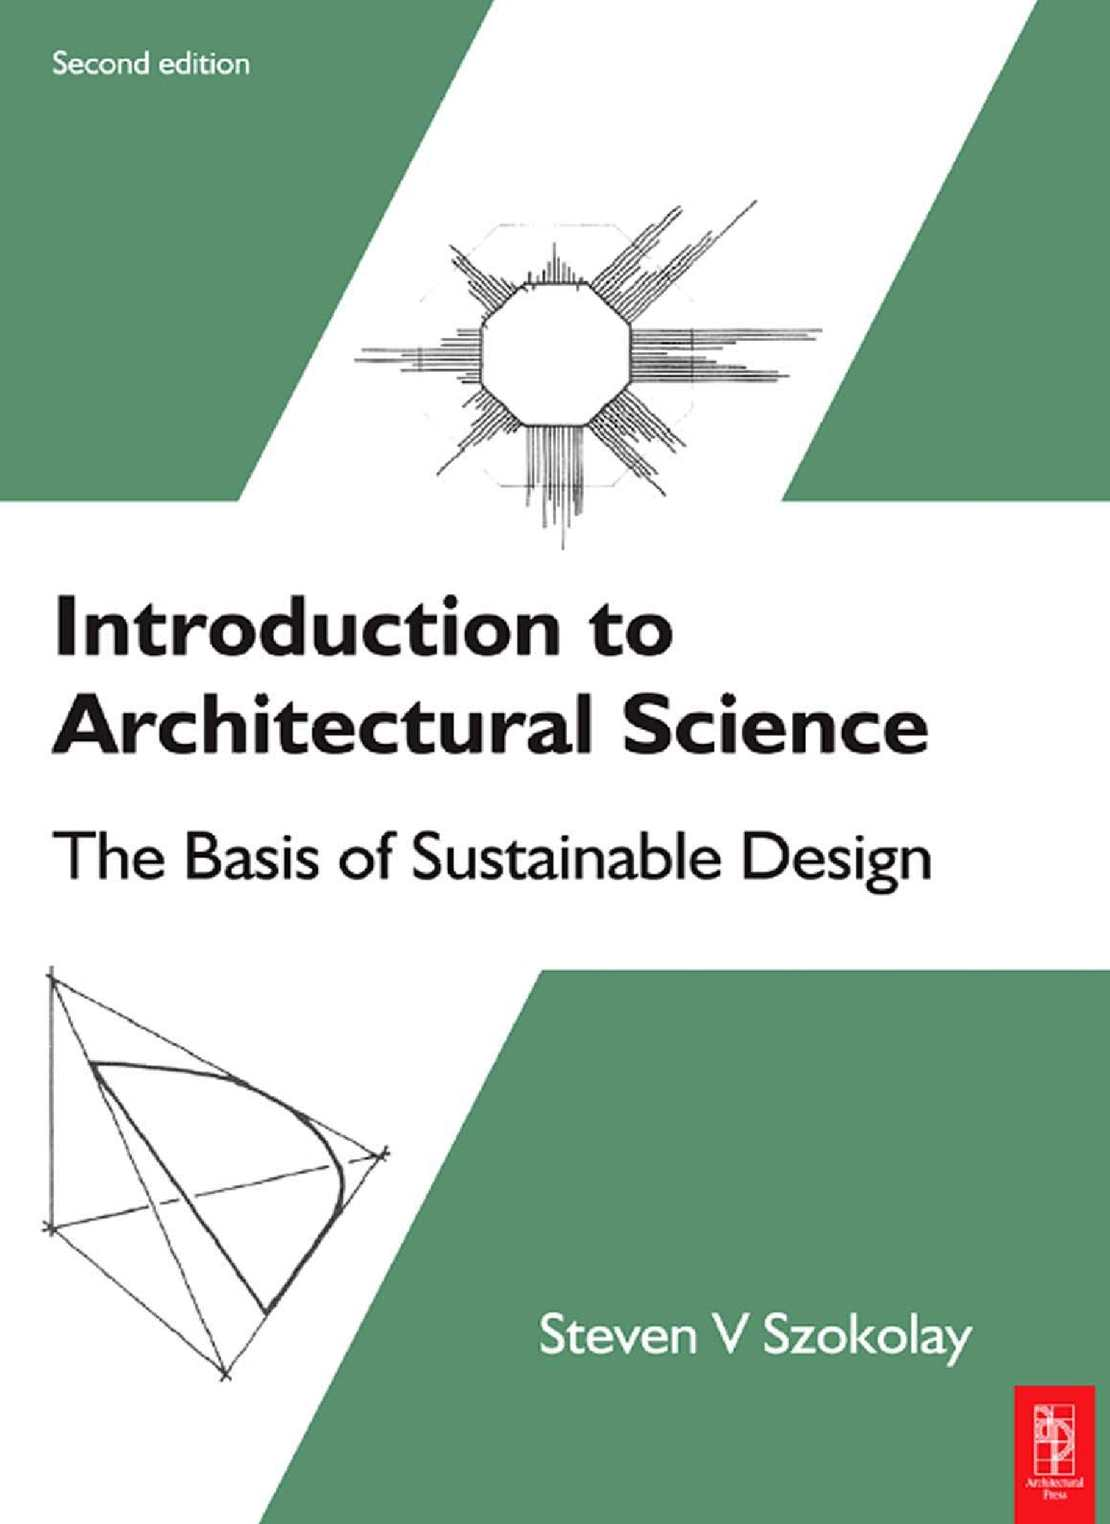 Calamo Introduction To Architectural Science The Basis Of Can You Tell Me About This Circuit Elements39 Name More Specifically Sustainable Design